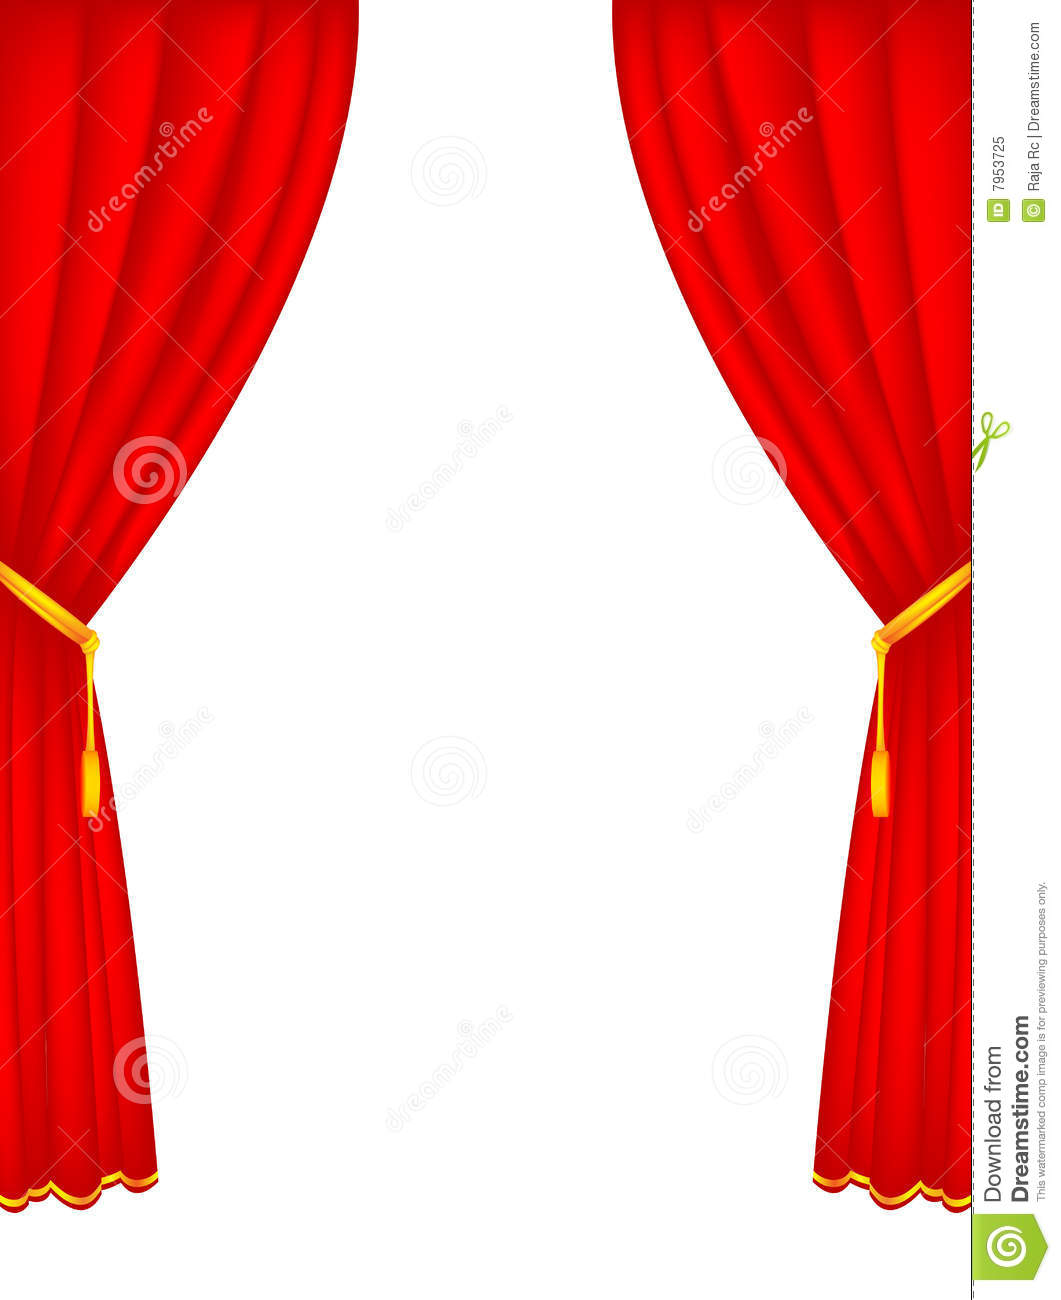 Velvet stage curtains - Stage Curtains Royalty Free Stock Photo Image 7953725